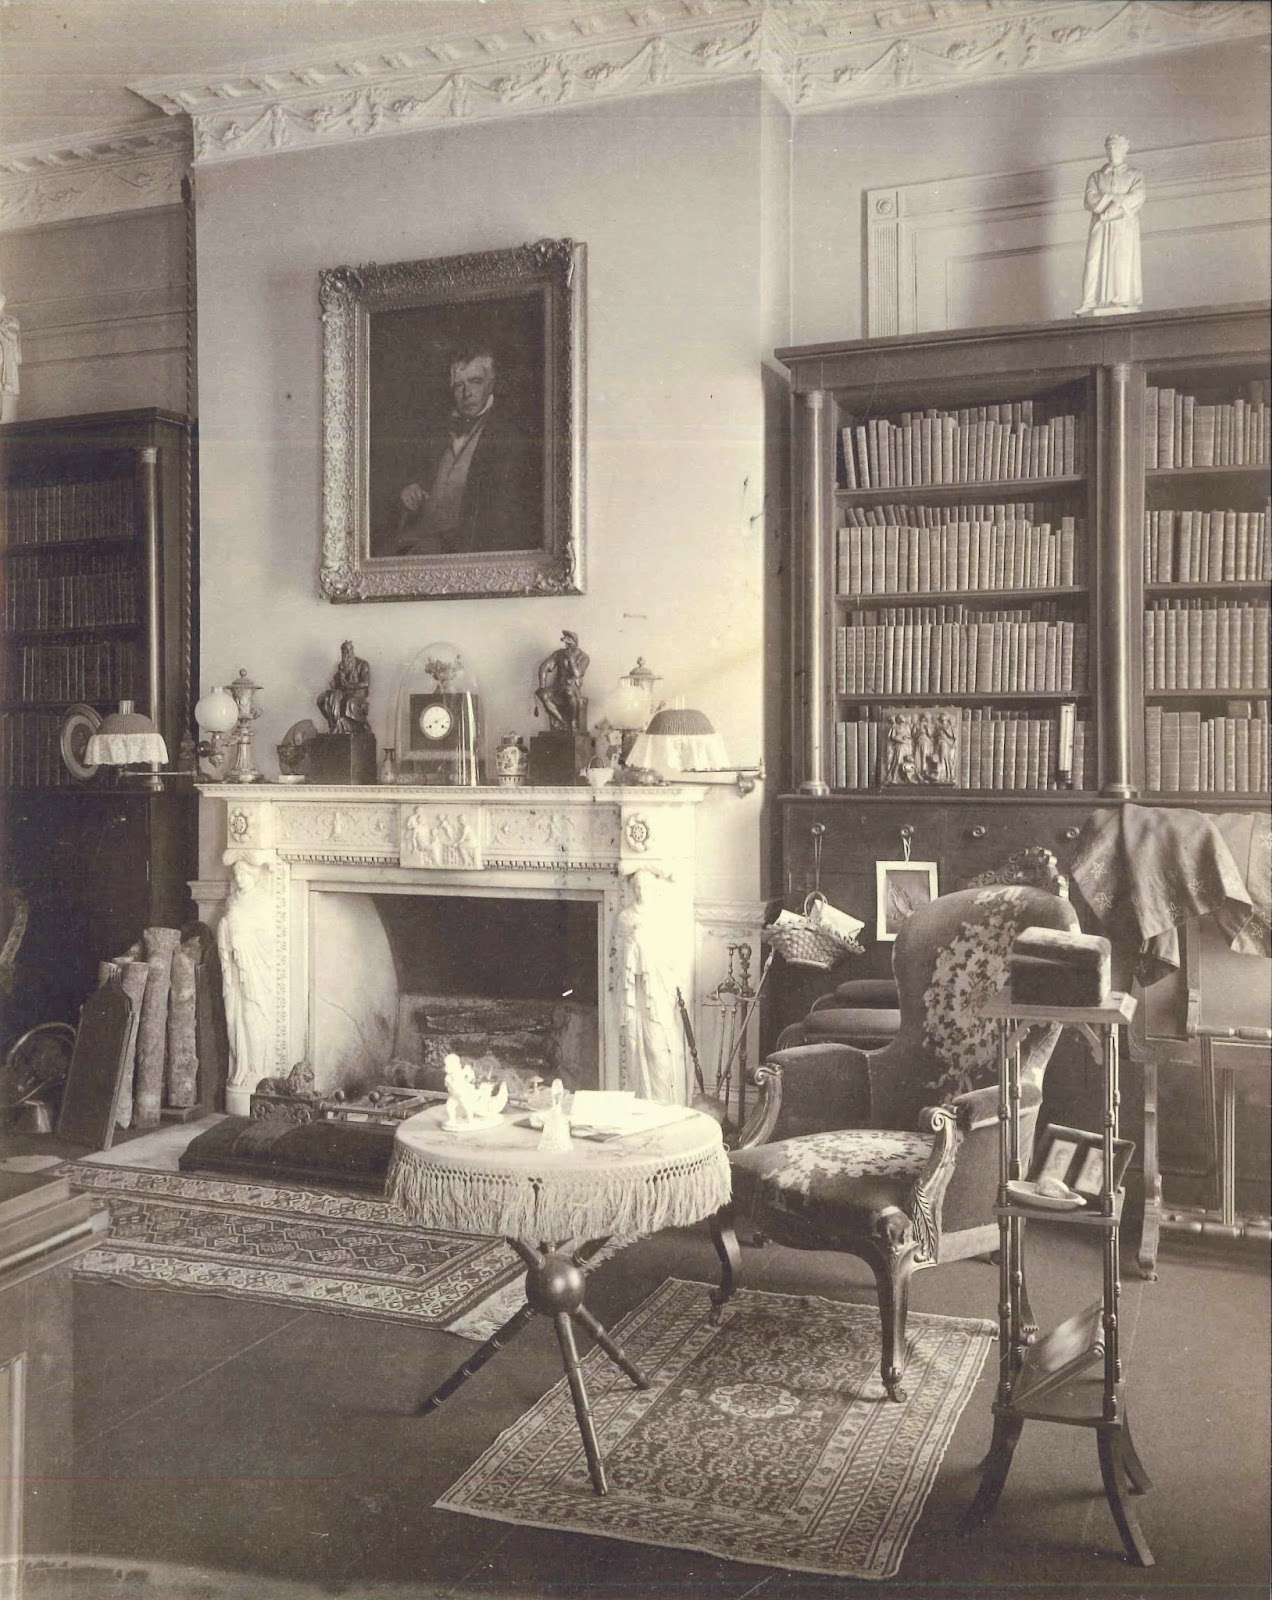 A black and white photograph of a richly decorated library.